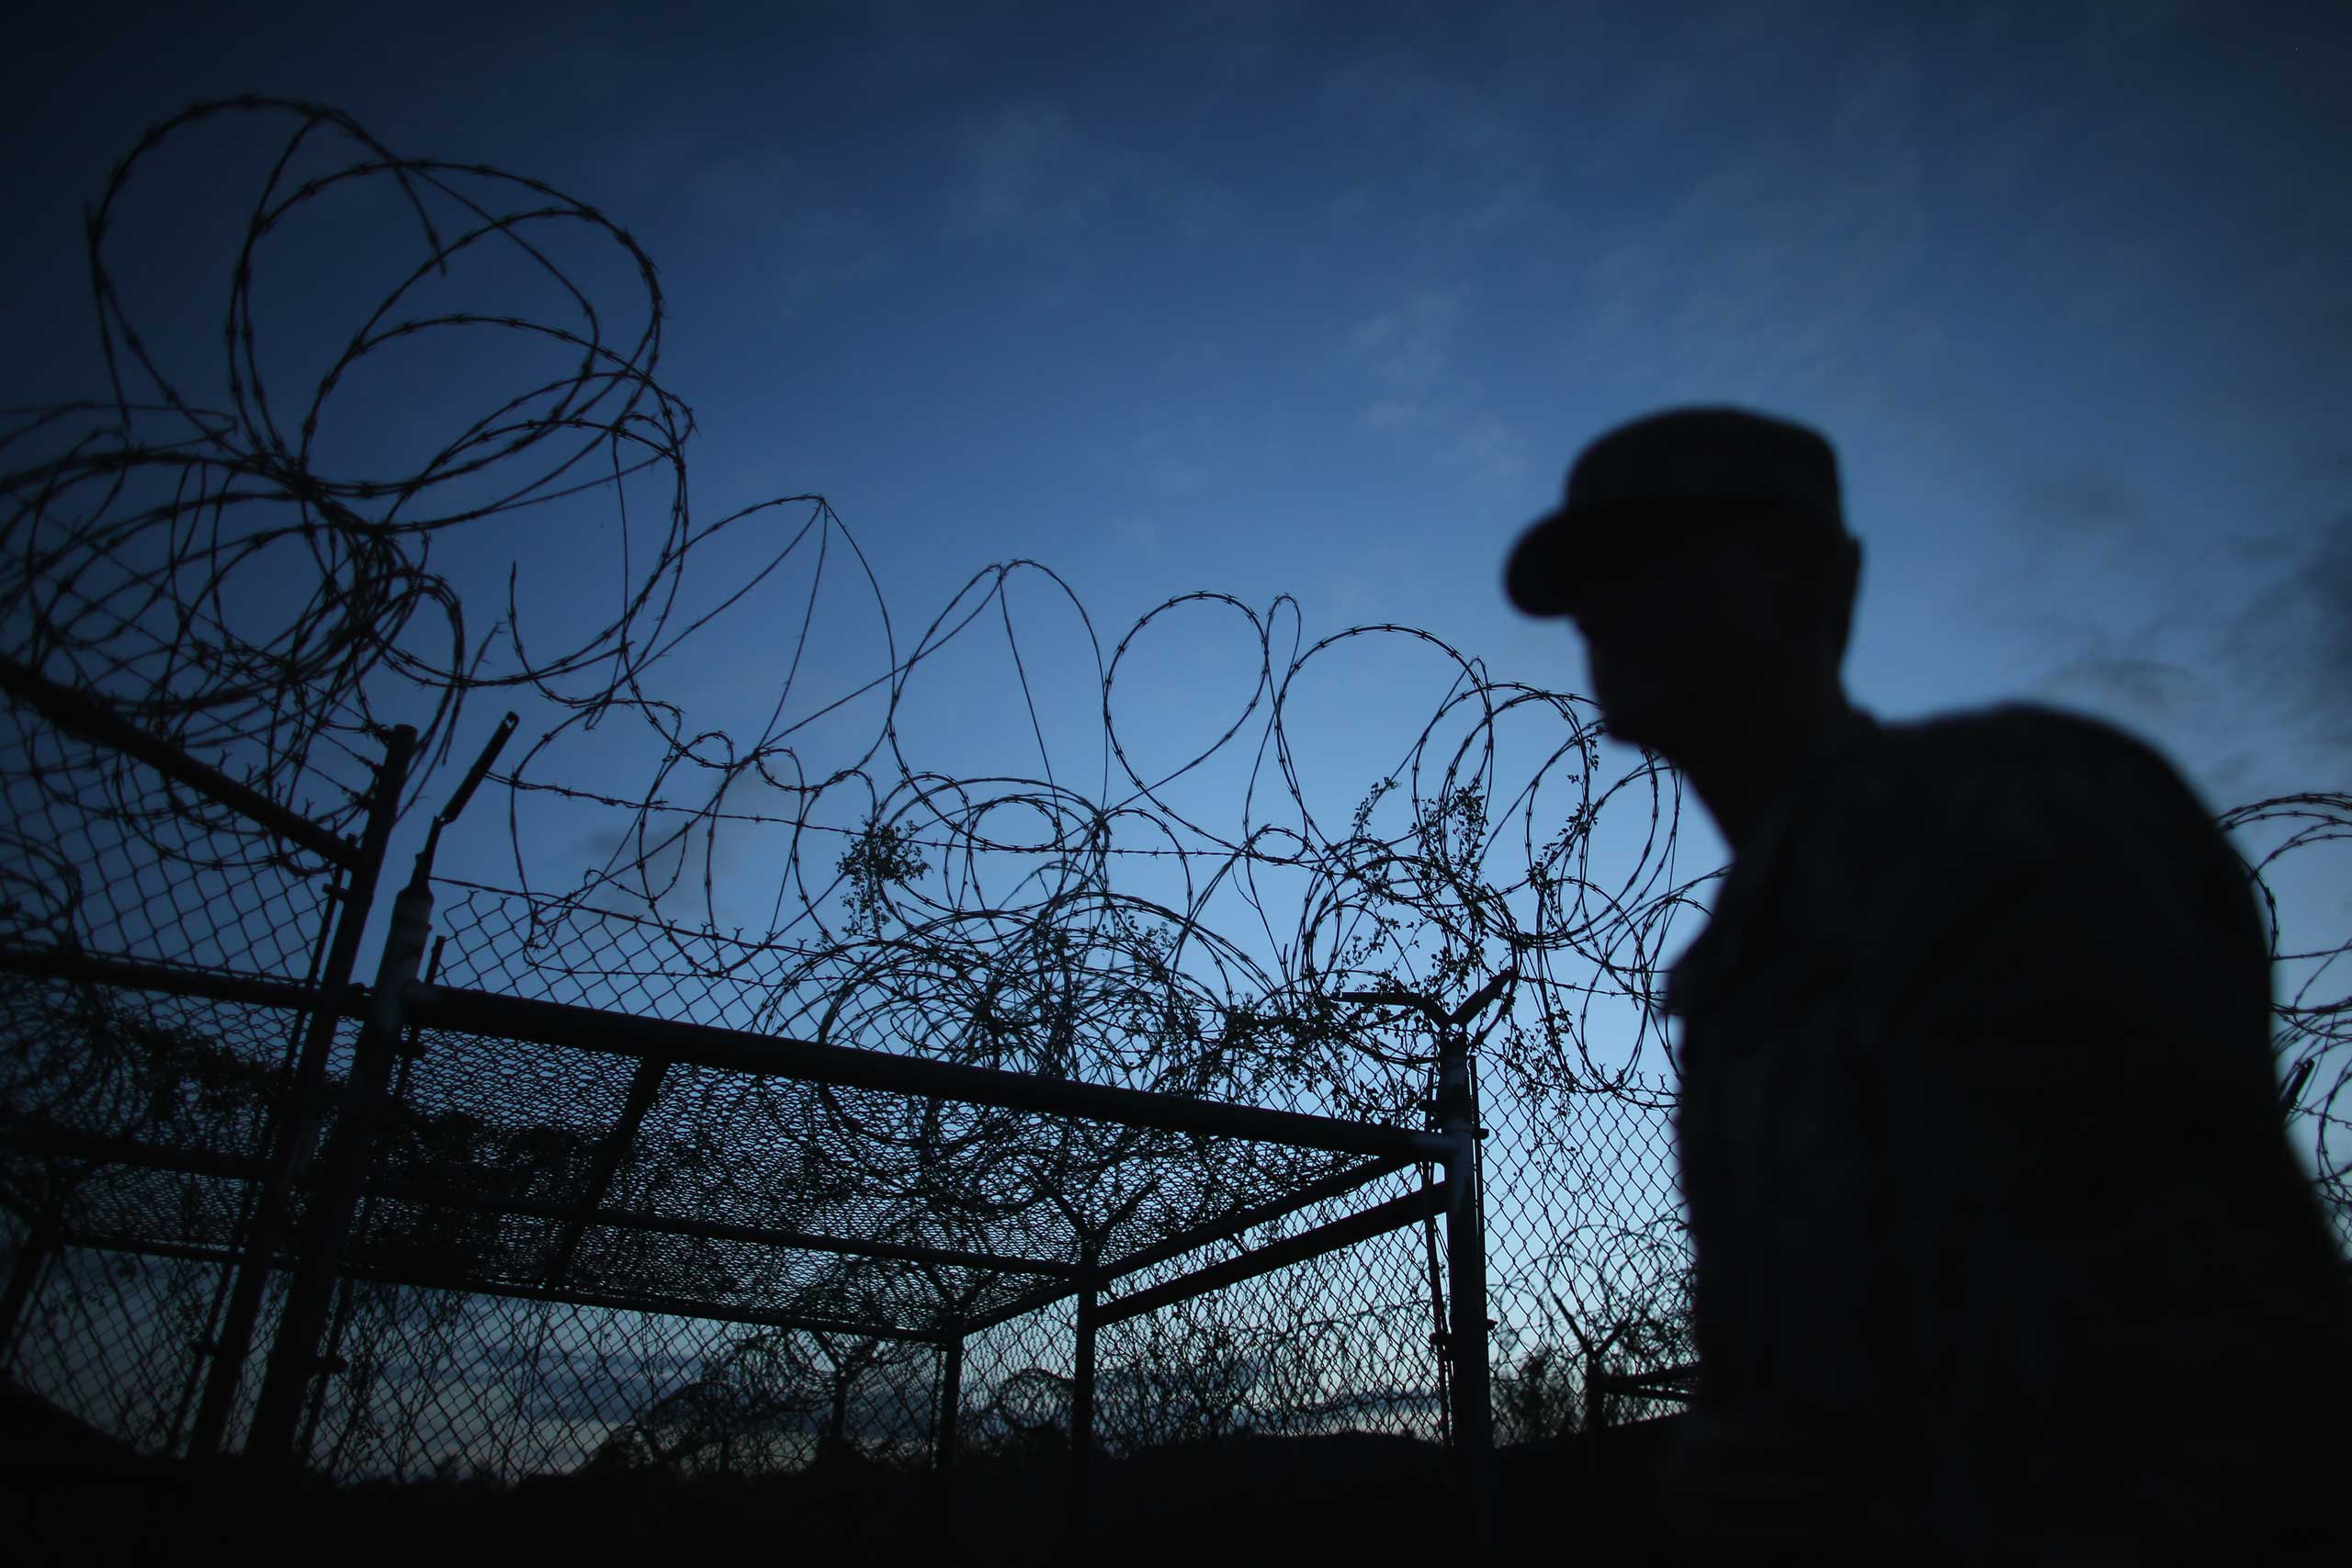 Camp X-Ray was the first detention facility to hold 'enemy combatants' at Guantanamo.